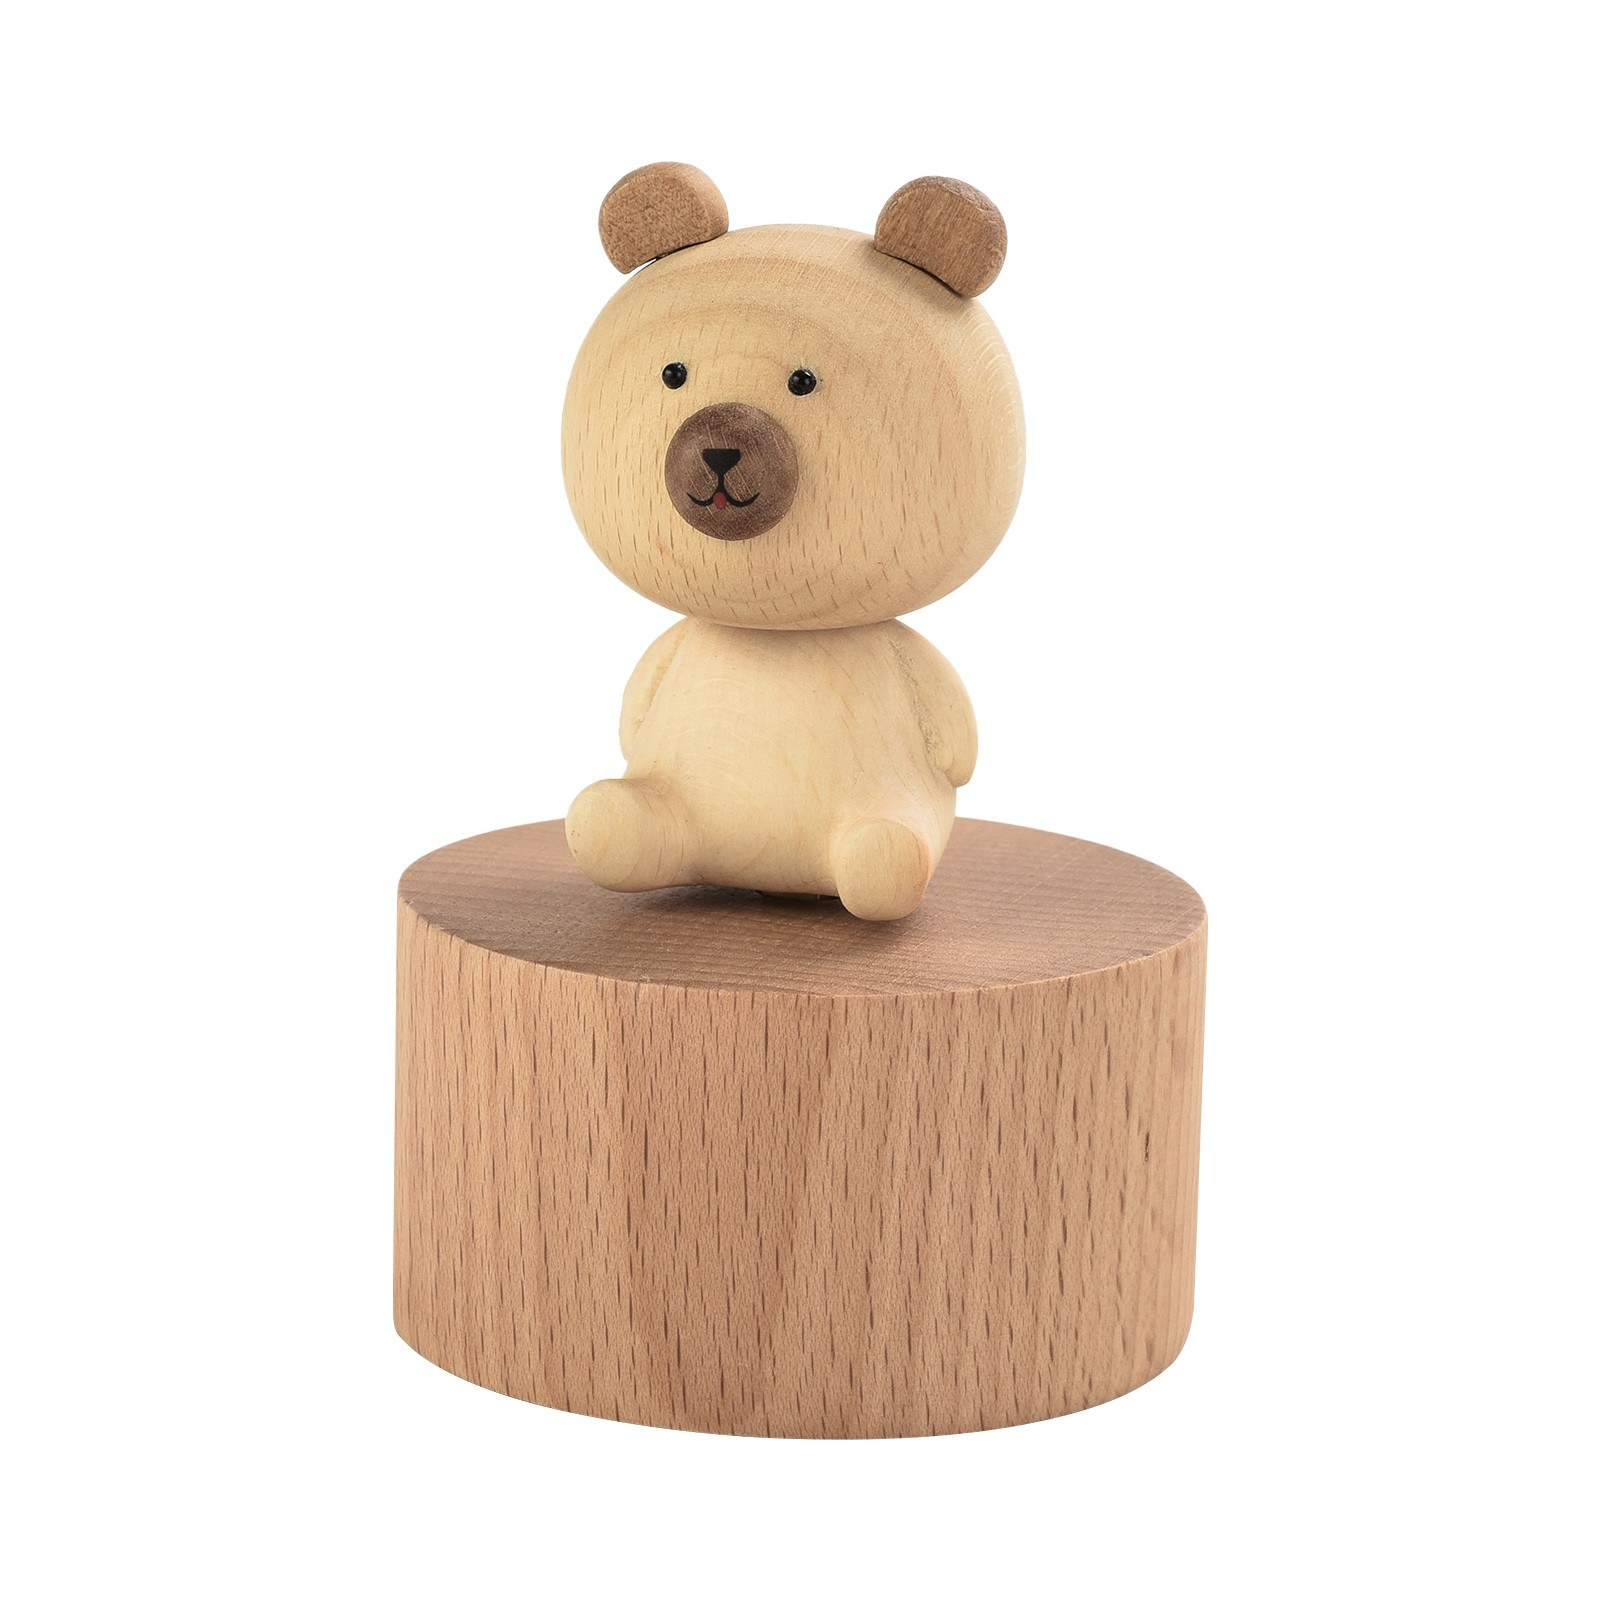 tomtop.com - 52% OFF ammoon Wooden Music Box with Cute Figurine Home Decor Crafts, Limited Offers $15.99